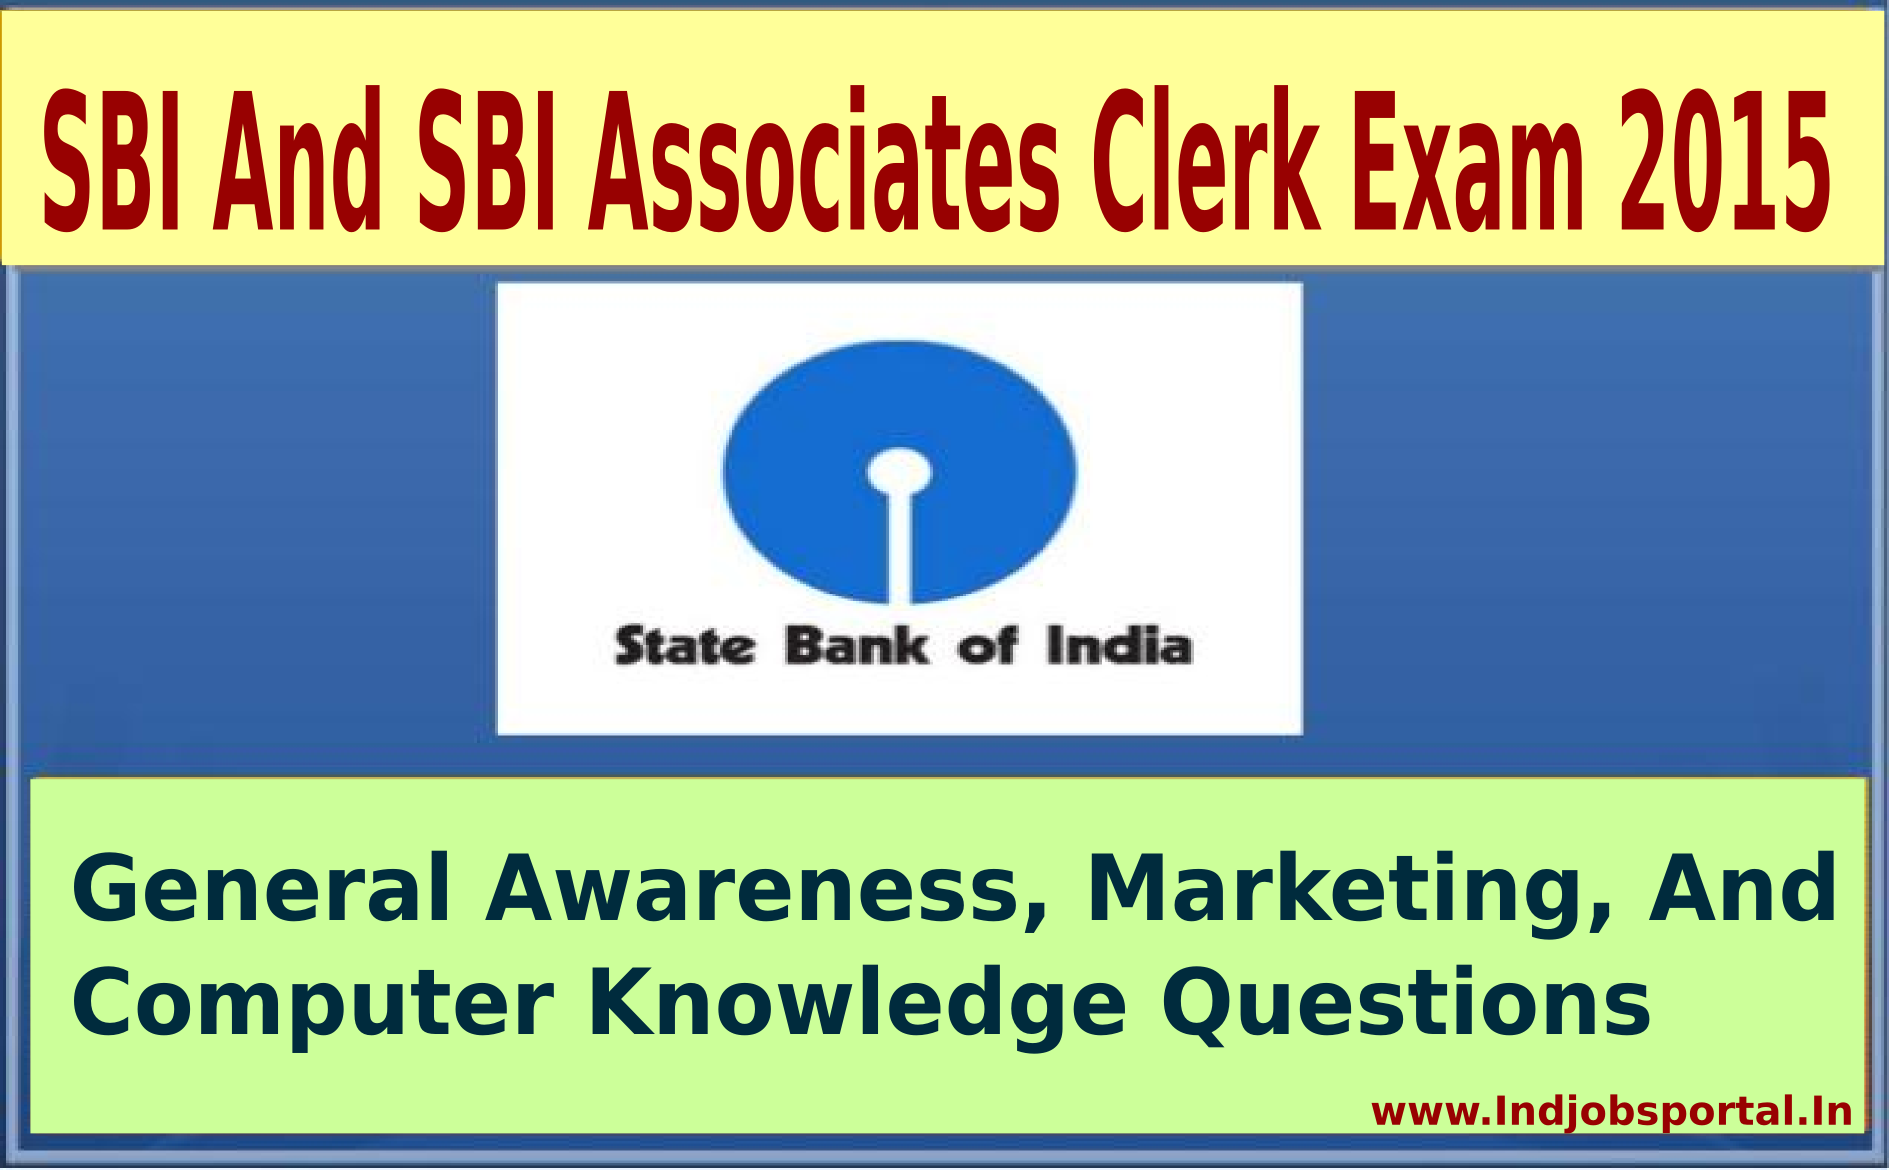 SBI And SBI Associates Clerk Exam 2015 General Awareness, Marketing, And Computer Knowledge Questions SBI And SBI Associates Clerk Exam 2015 General Awareness, Marketing, And Computer Knowledge Questions